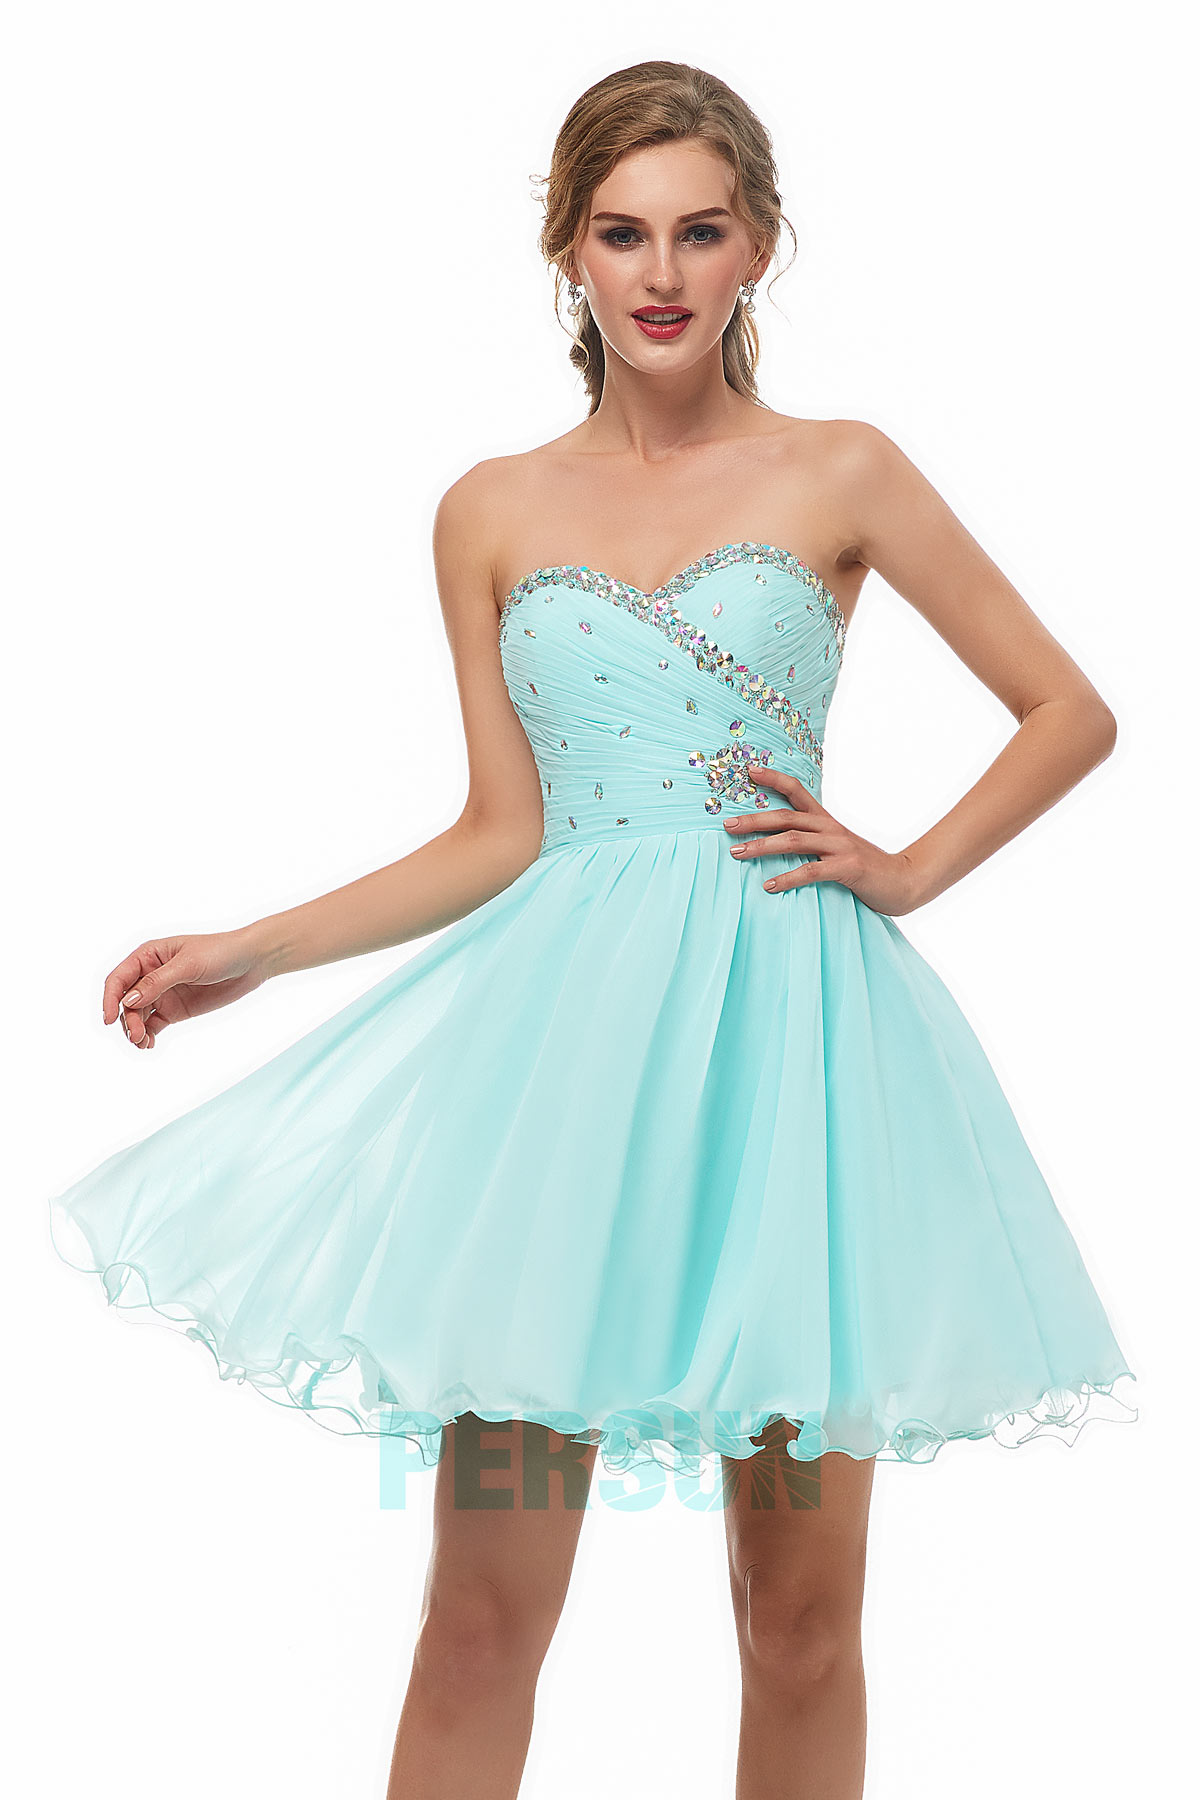 robe cocktail patineuse turquoise clair bustier coeur ornée de strass